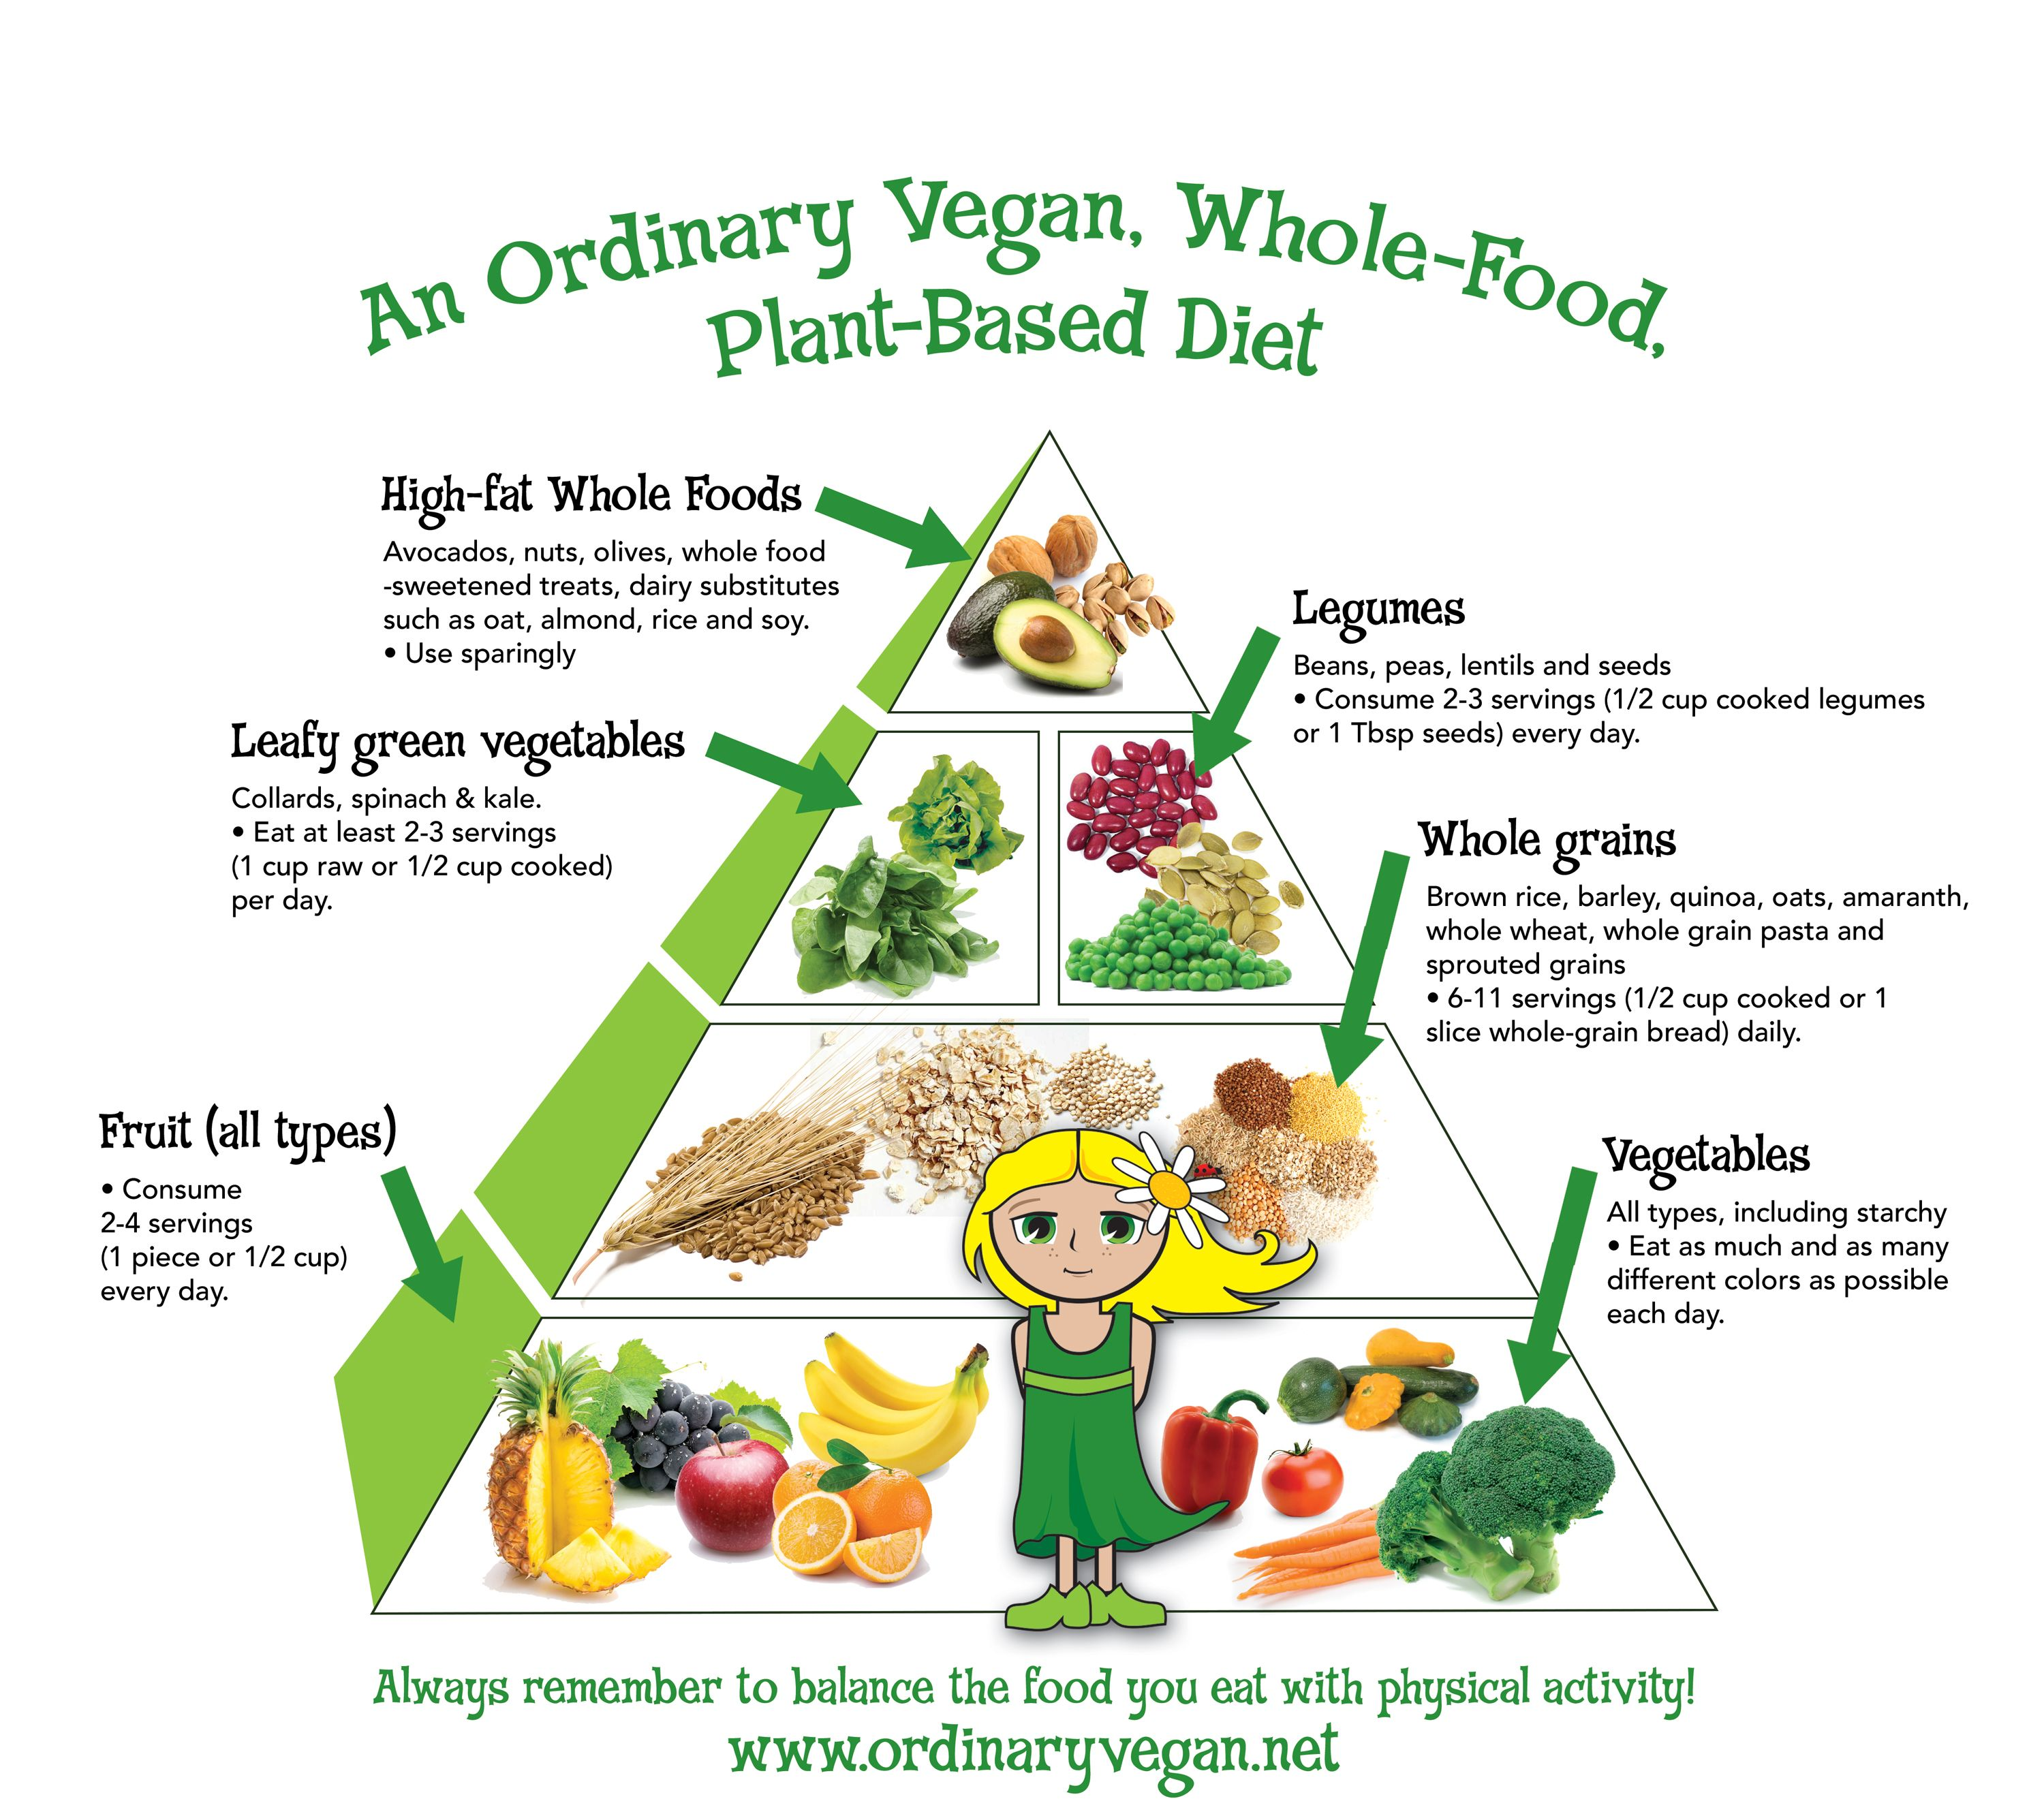 Vegetarian Vegan: Vegan Food Pyramid 18 X 24 Poster Now Available For Home